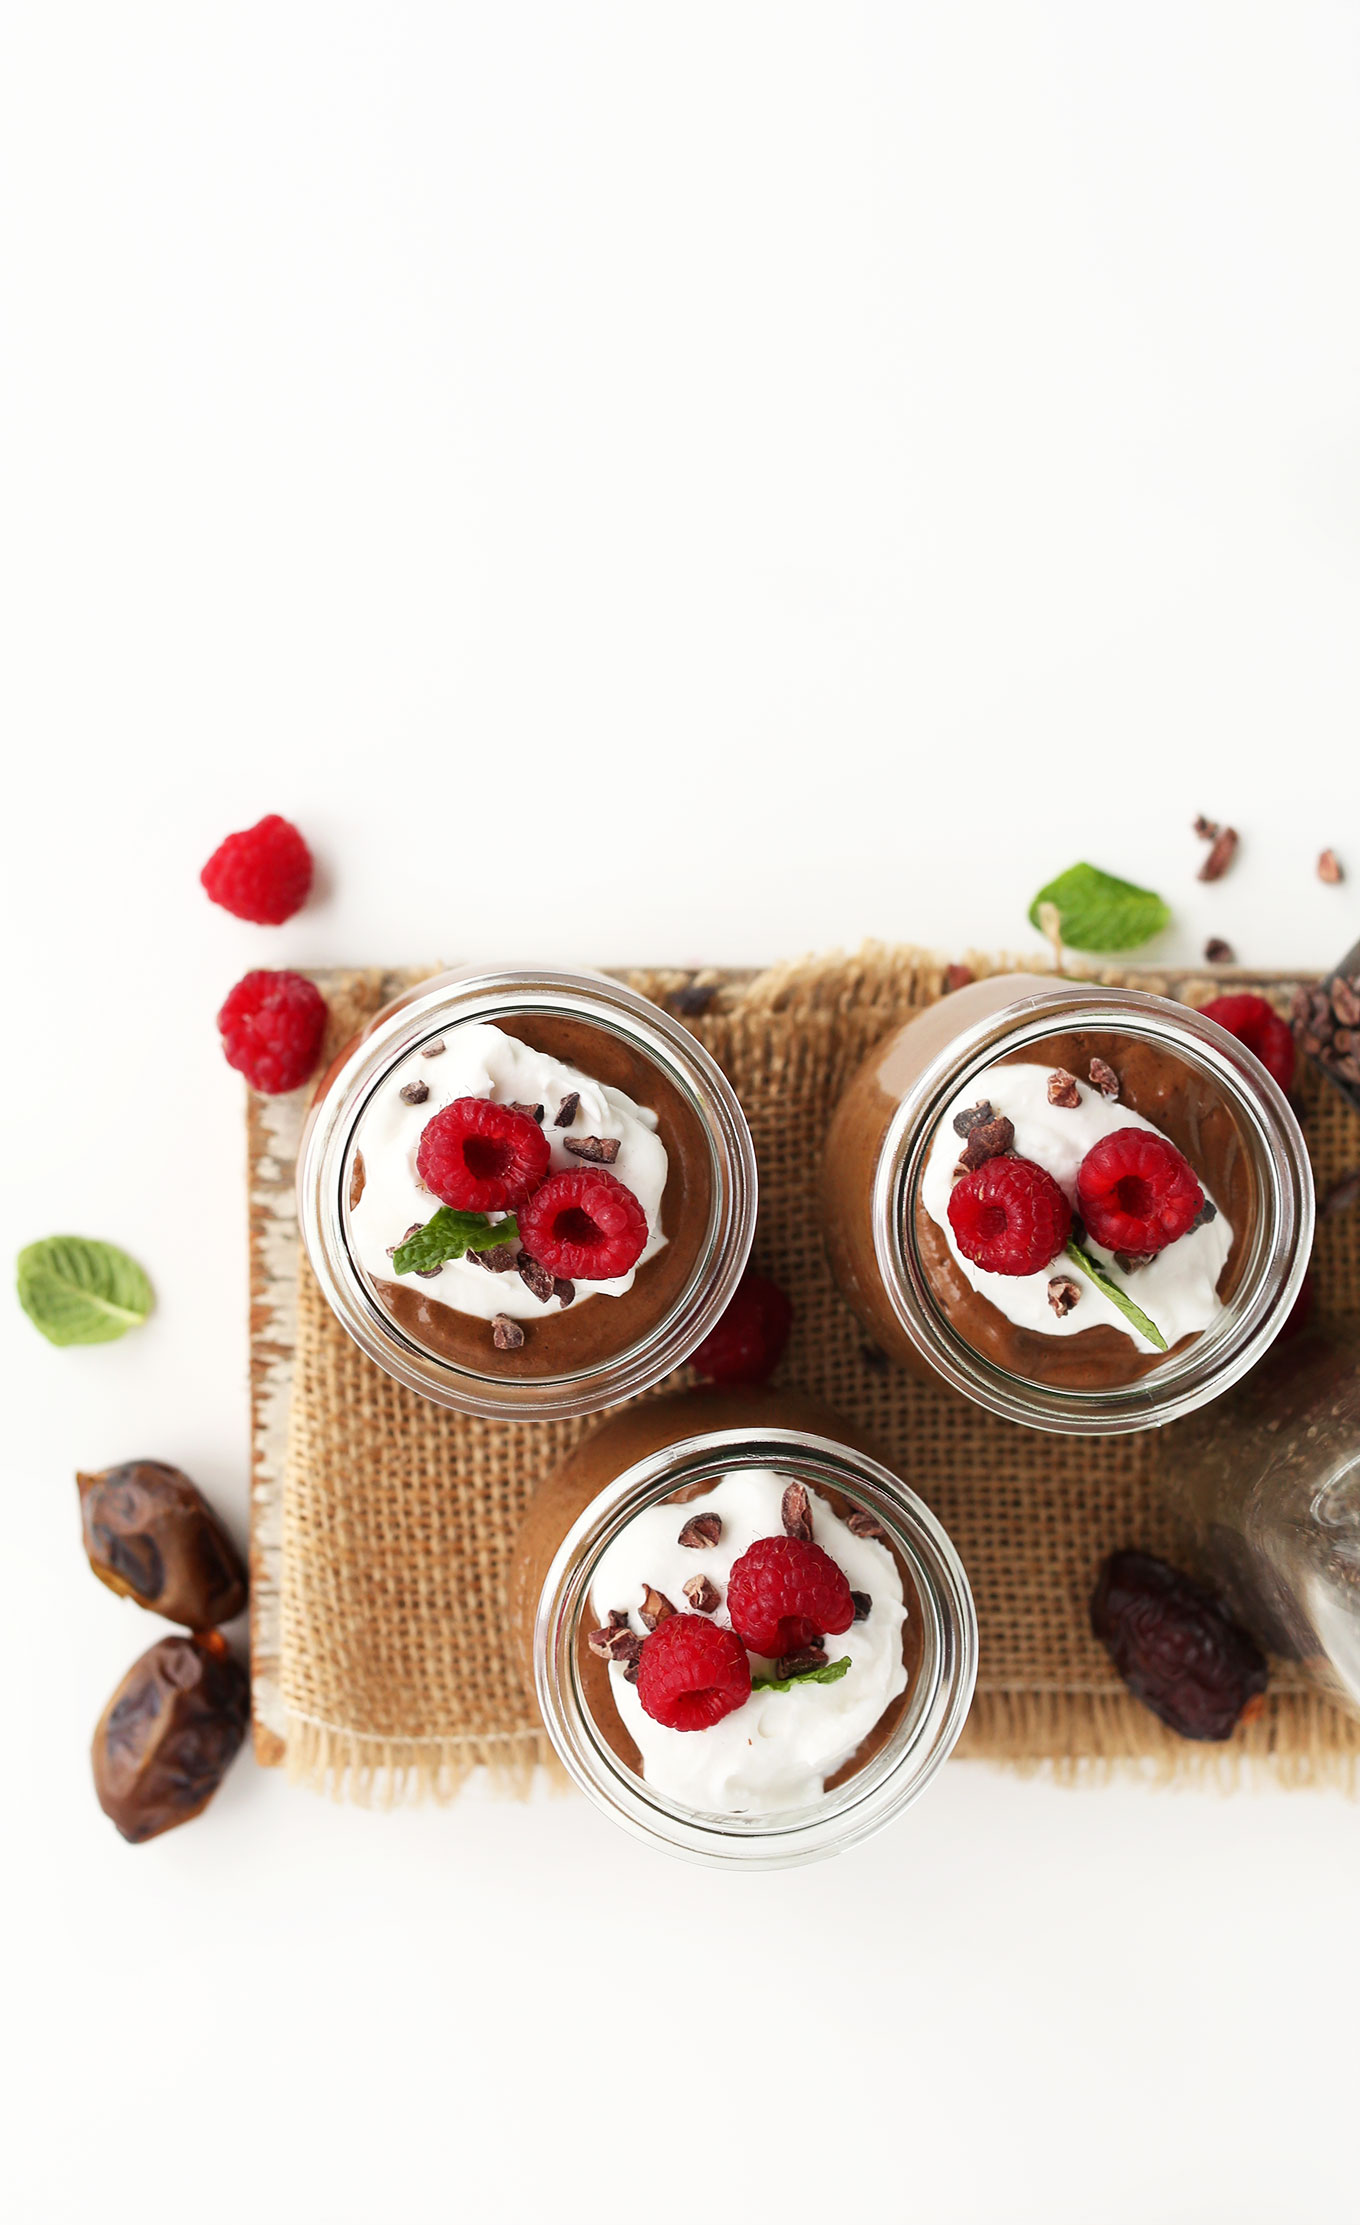 Top view showing jars of vegan Chocolate Chia Seed Pudding topped with coconut whip and raspberries